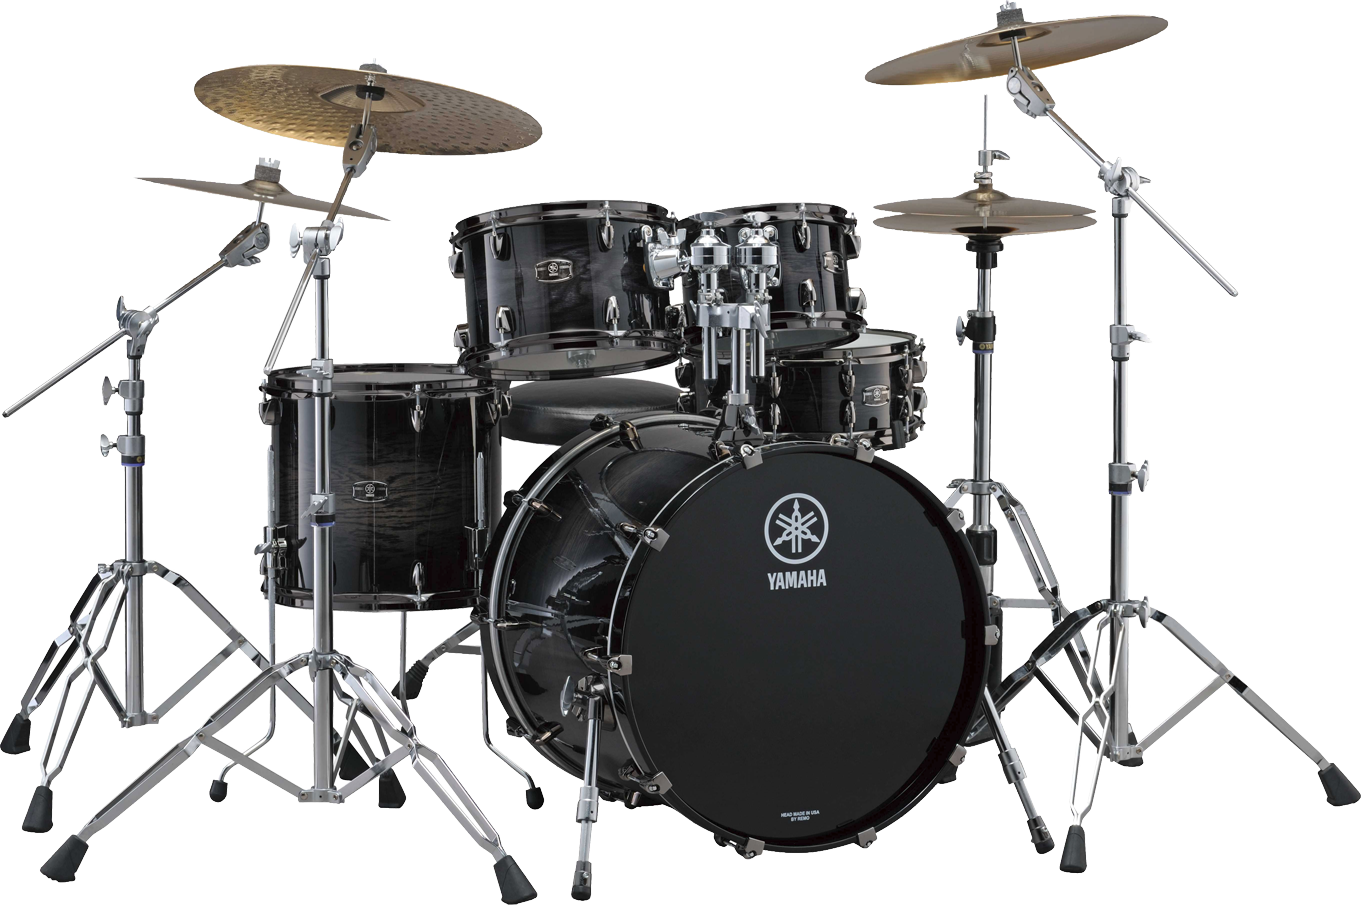 Drums Png - Download Drums Free PNG Image - Free Transparent PNG Images, Icons ...